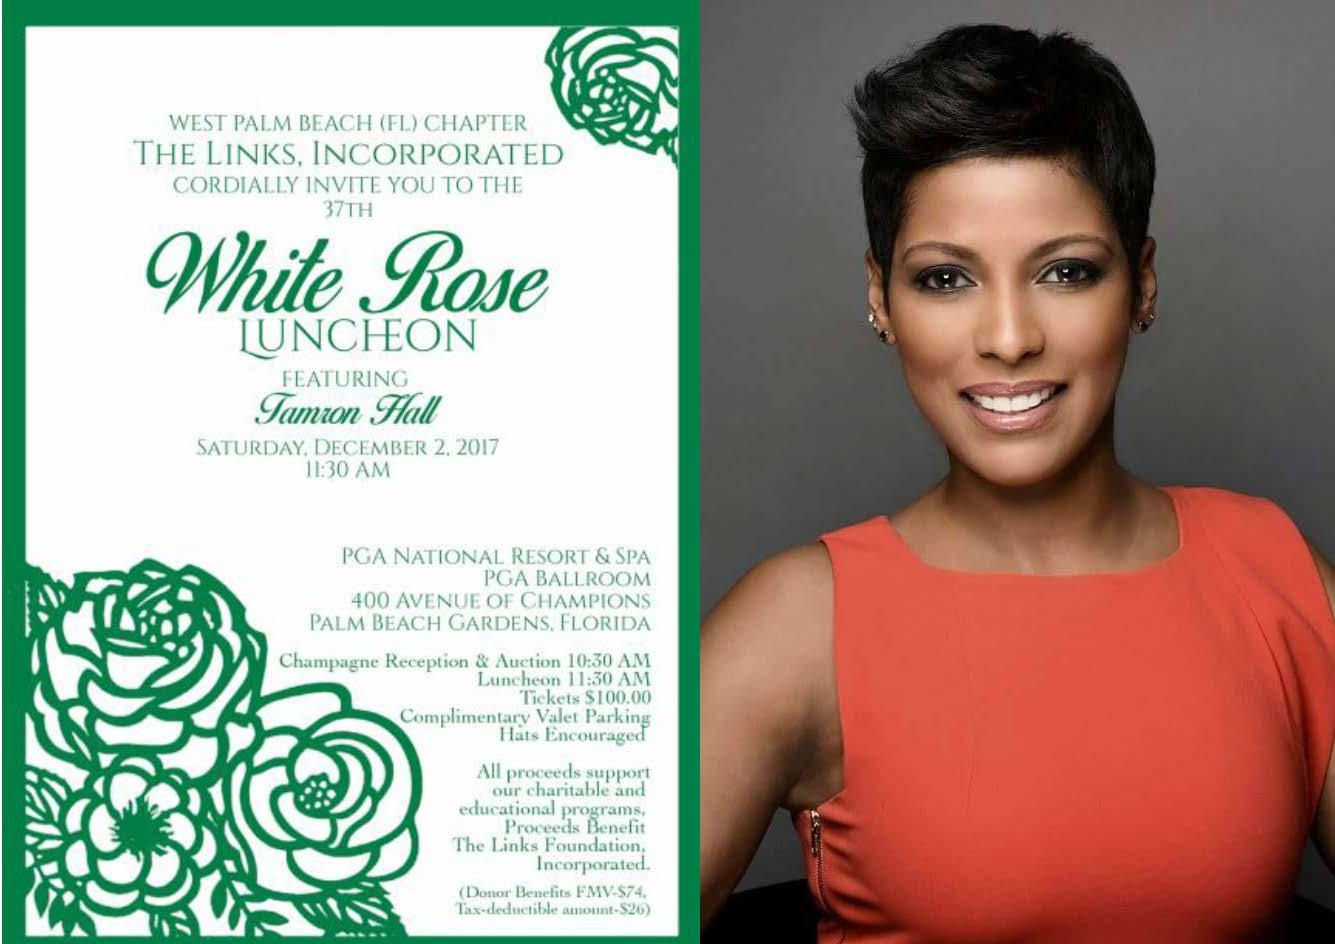 37th White Rose Luncheon